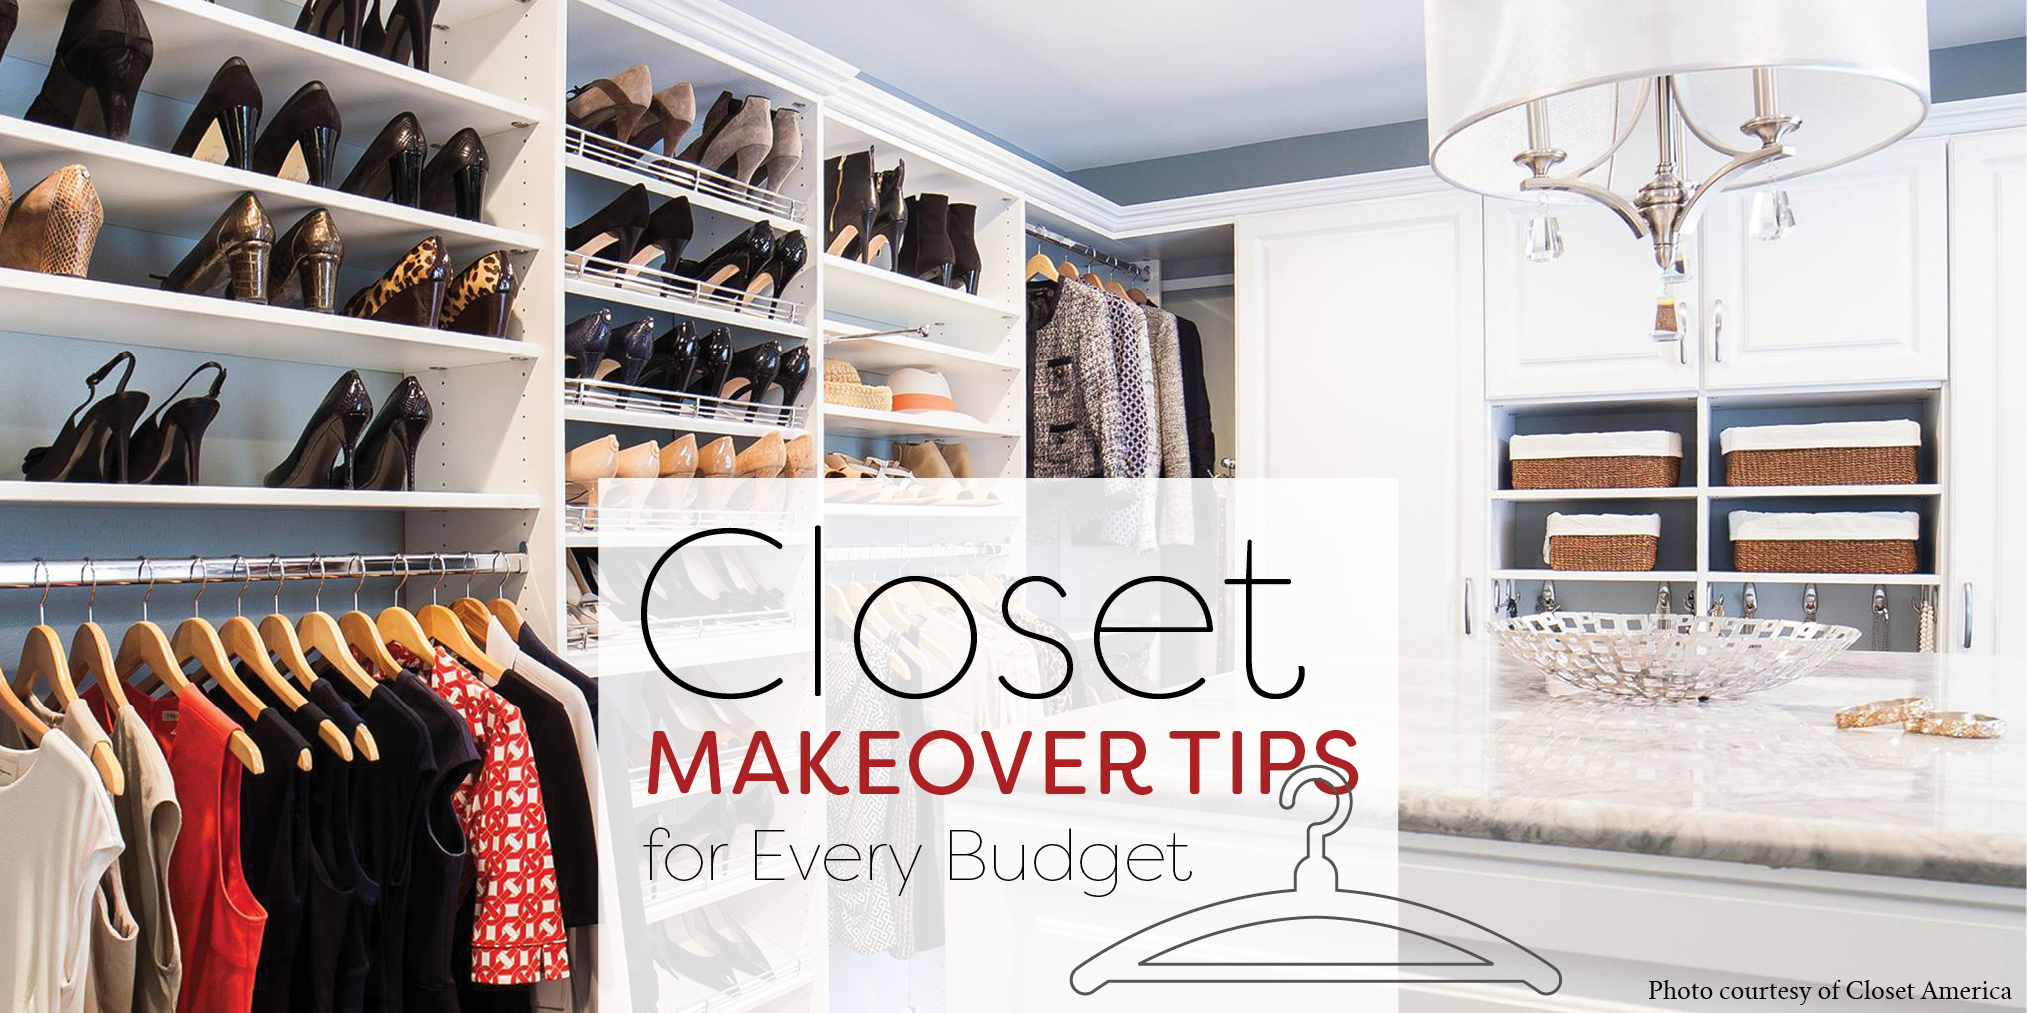 Closet Makeover Tips